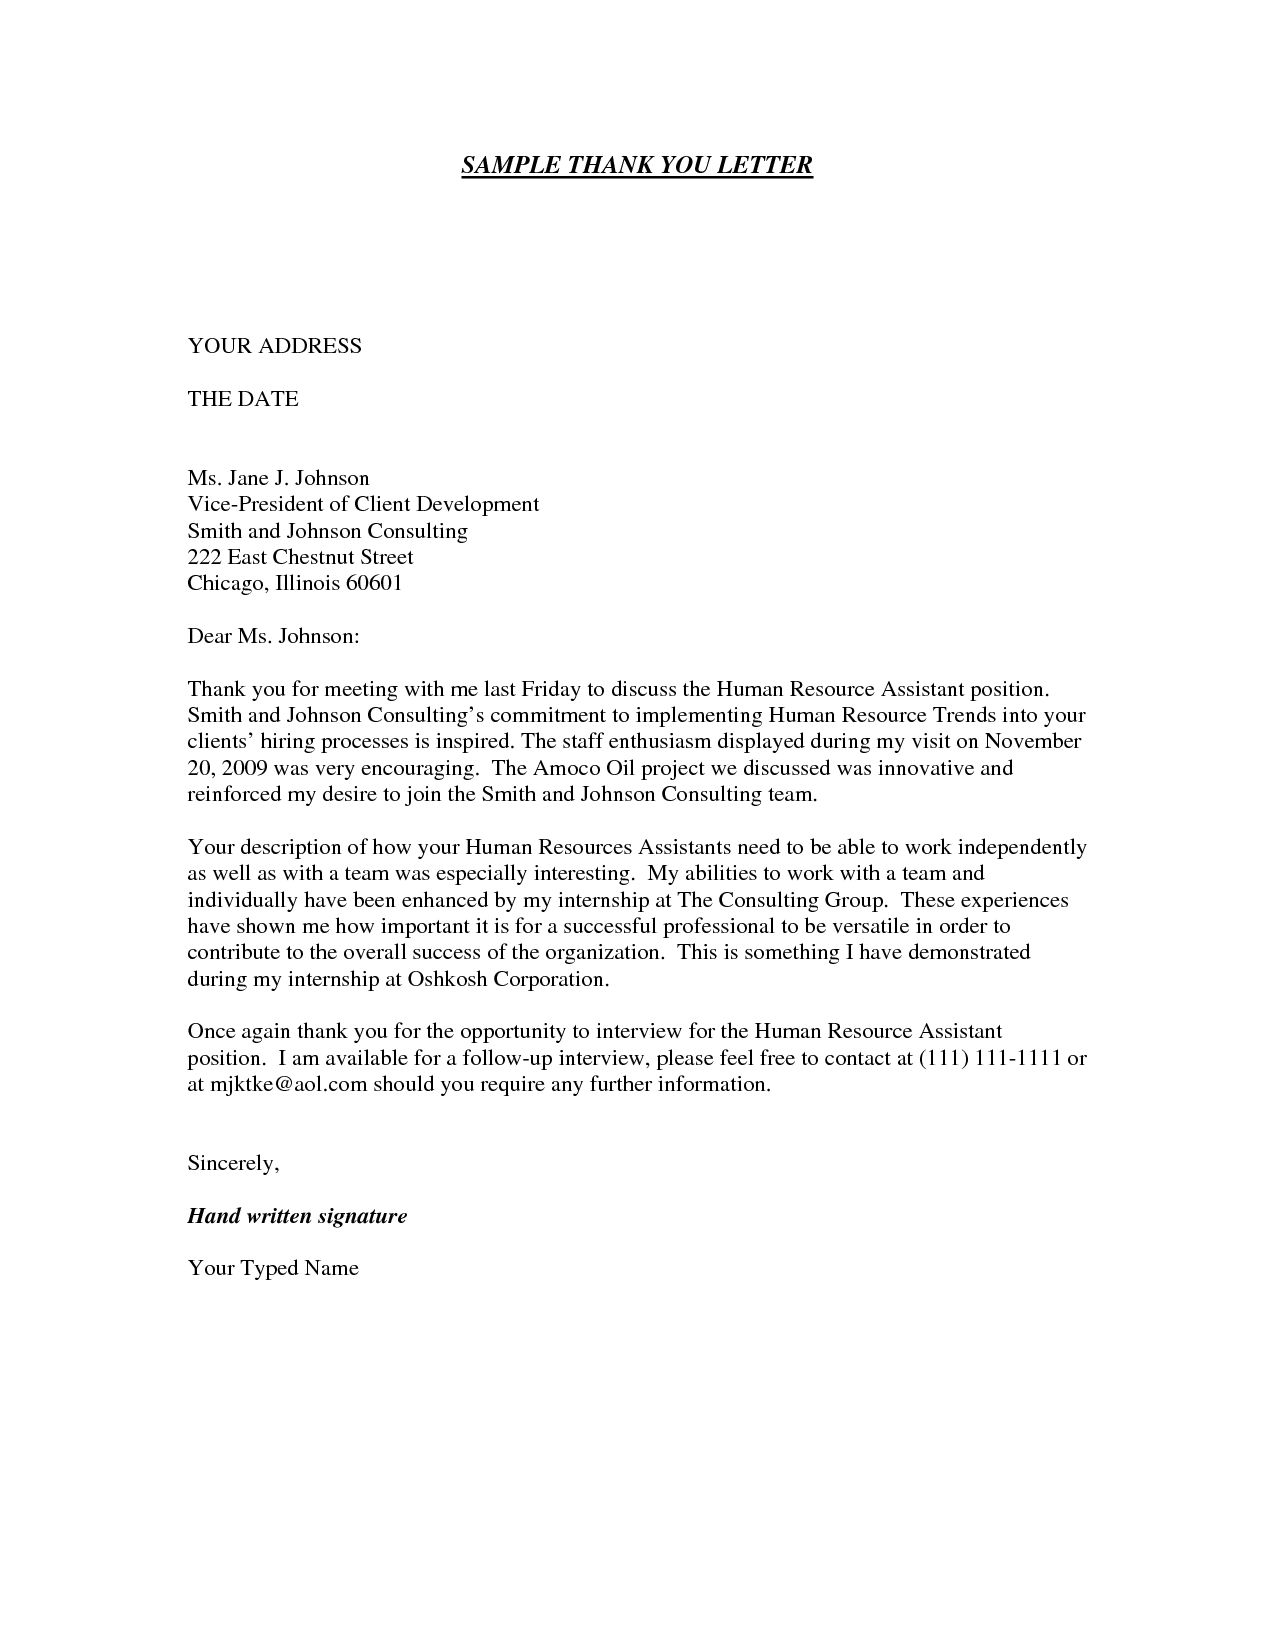 26 Medical Assistant Cover Letter Examples Medical